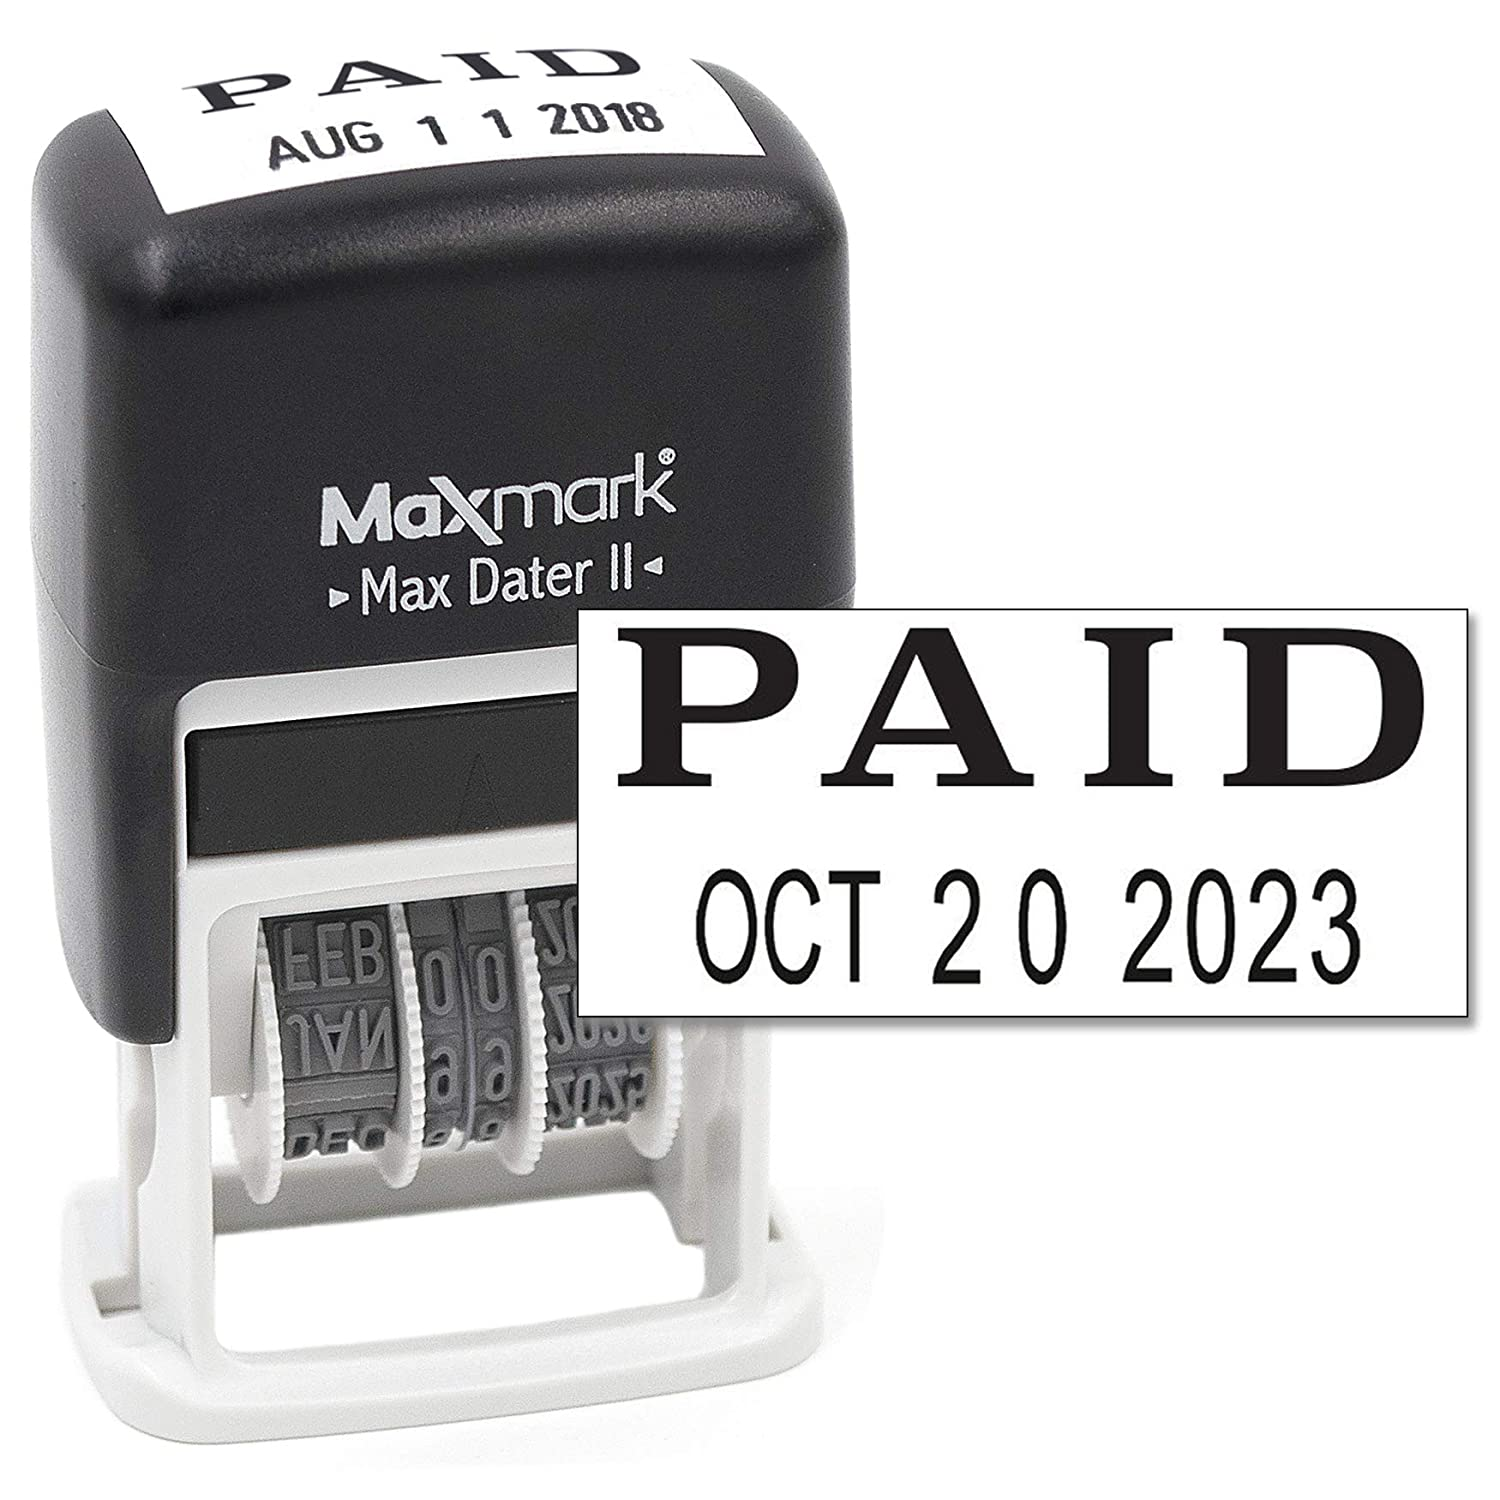 Max Dater II 12-Year Band Black Ink MaxMark Self-Inking Rubber Date Office Stamp with Approved Phrase /& Date